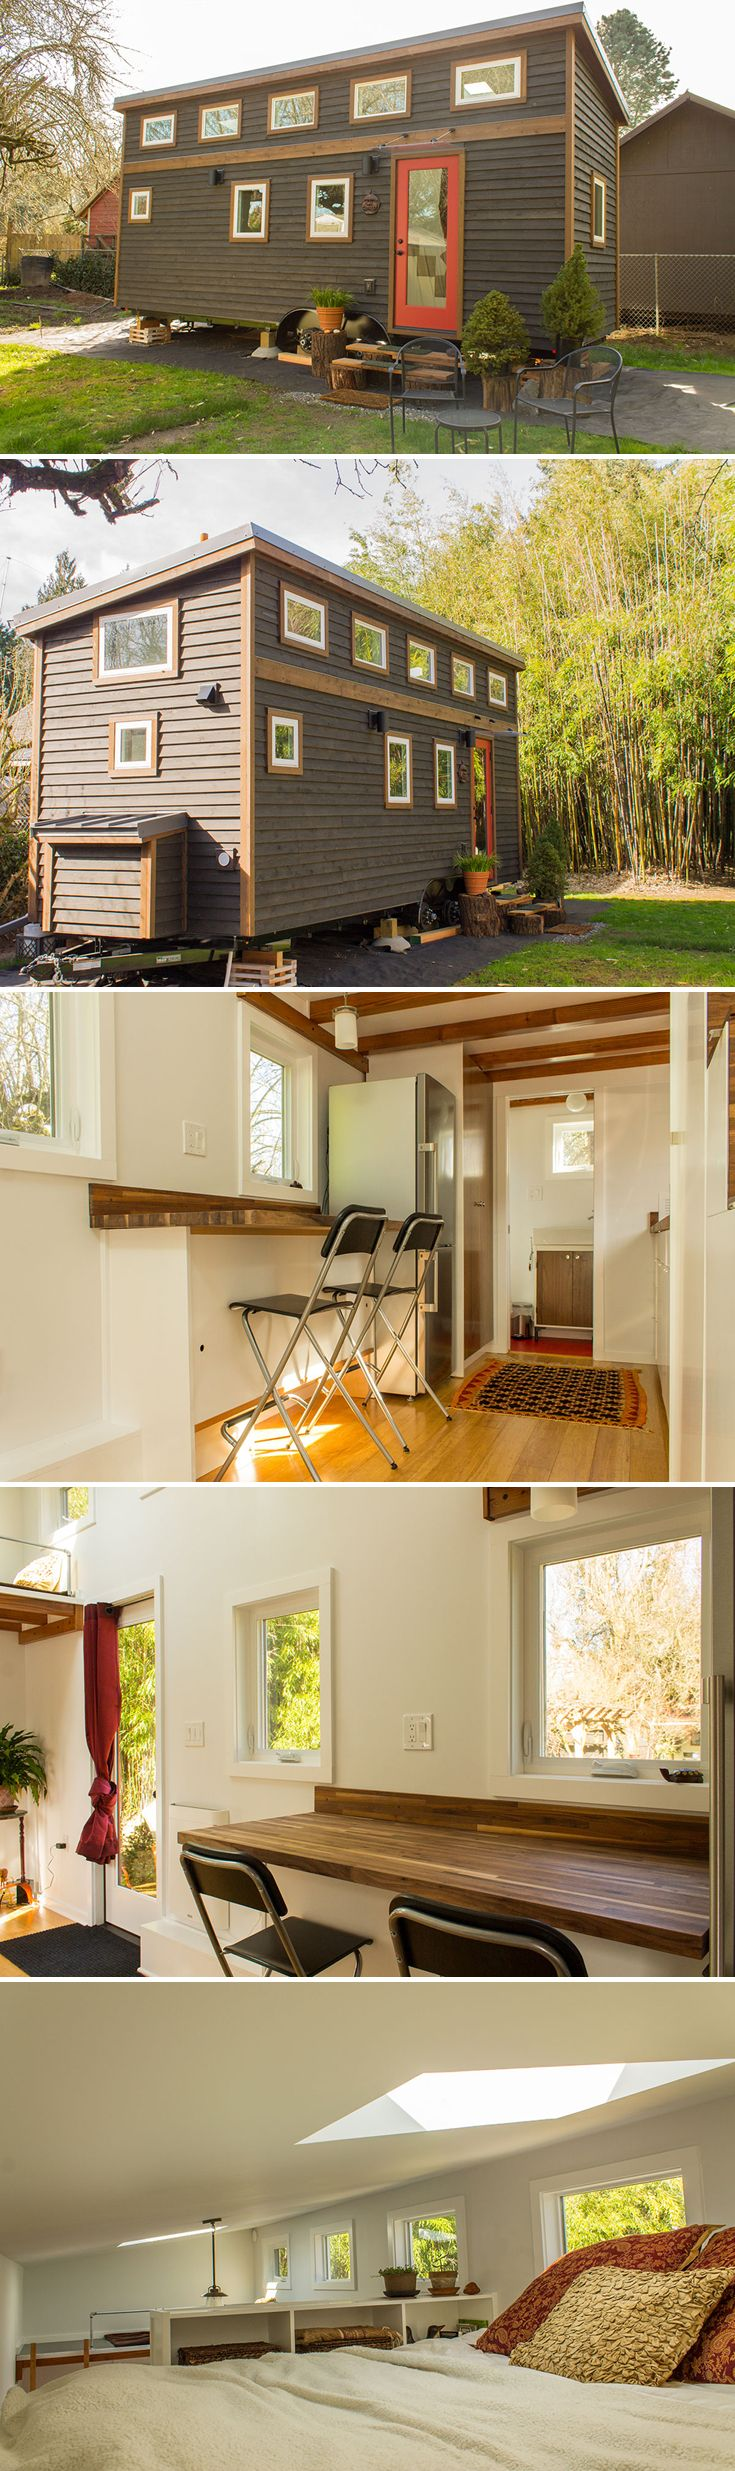 """Hikari, Japanese for """"light-filled,"""" gets its name from the 14 windows and two skylights. The energy-efficient design makes for an eco-friendly tiny house."""